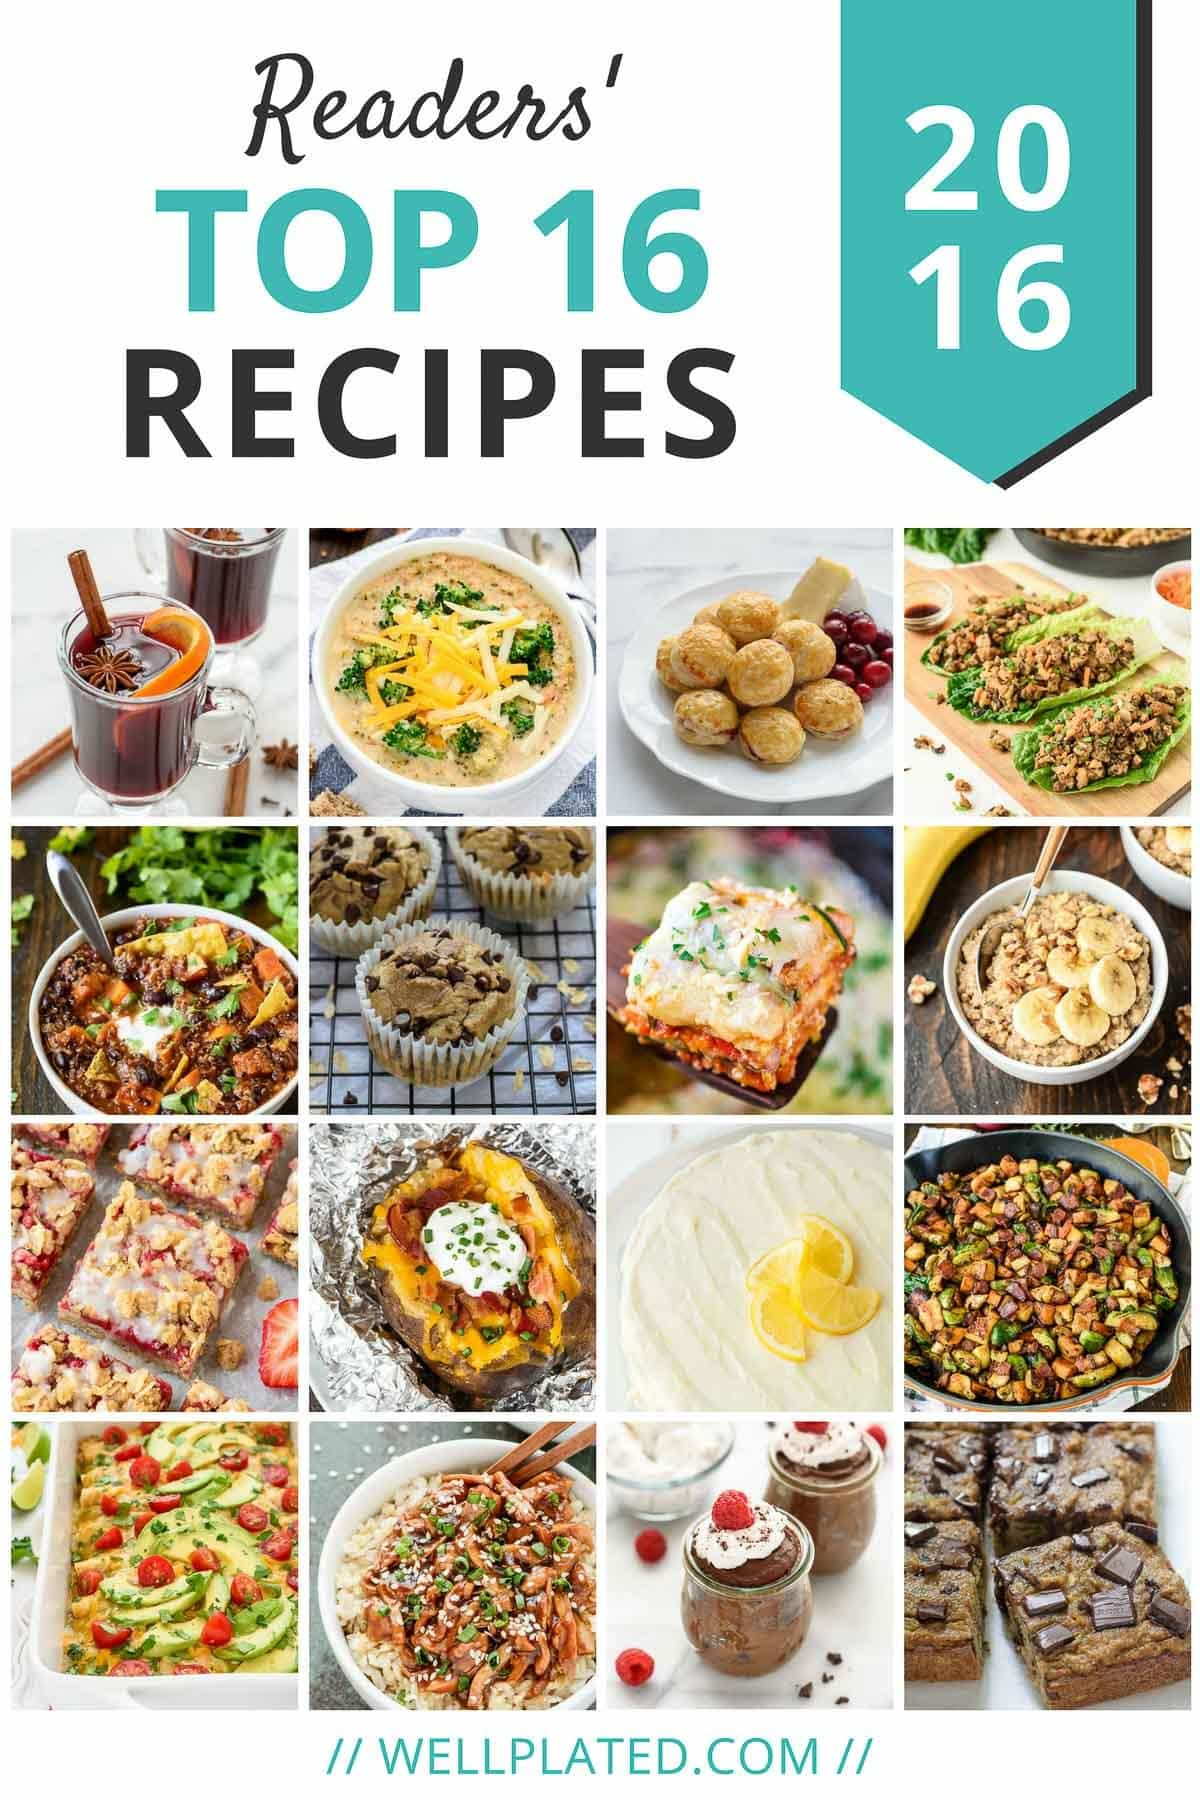 Our Readers Top 16 Recipes of 2016. Easy and healthy dinner recipes, healthy desserts, snacks, and more! | wellplated.com @wellplated